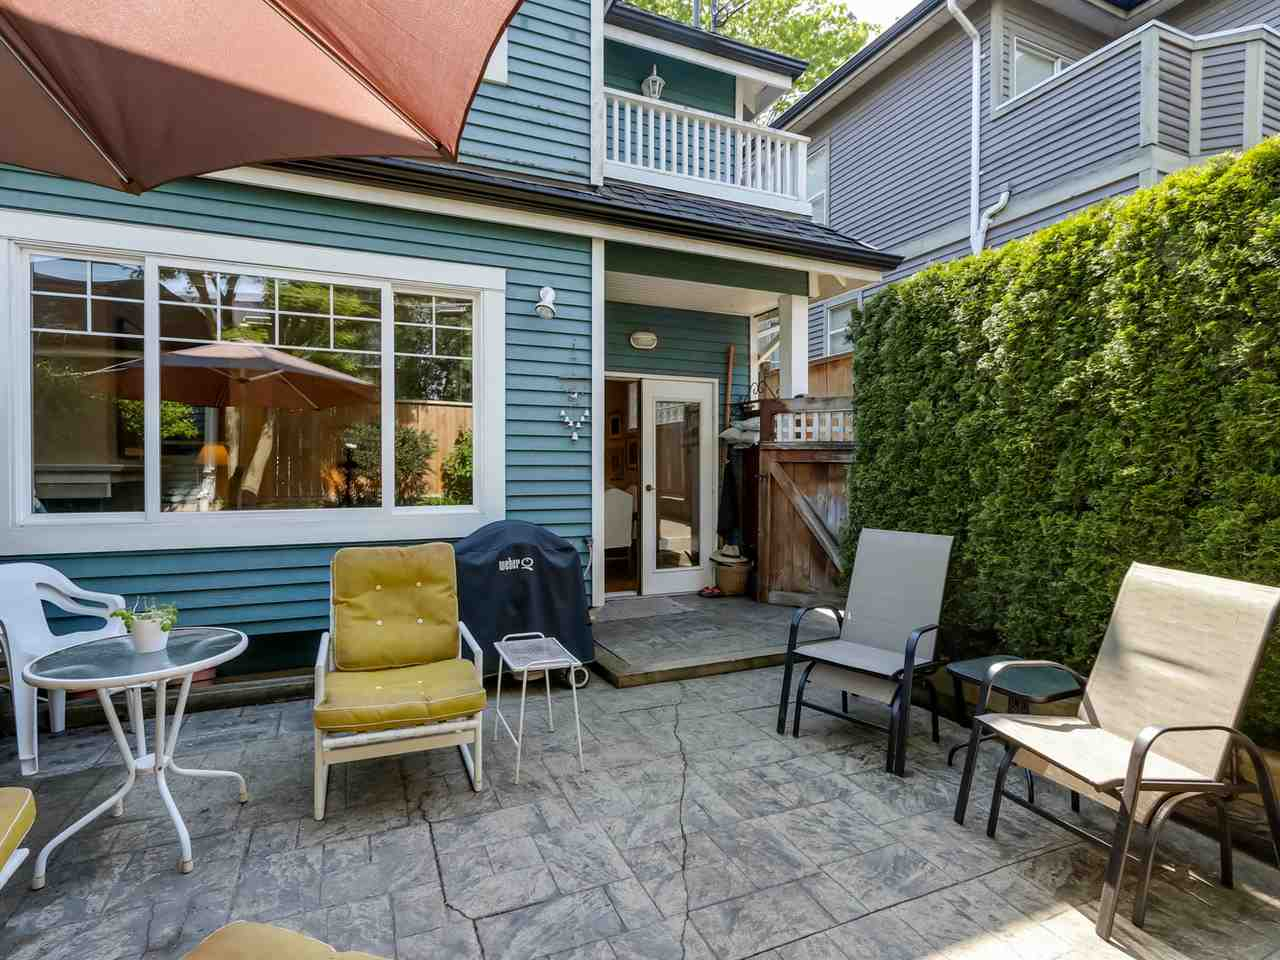 Photo 19: 1825 W 11TH Avenue in Vancouver: Kitsilano Townhouse for sale (Vancouver West)  : MLS® # R2061107